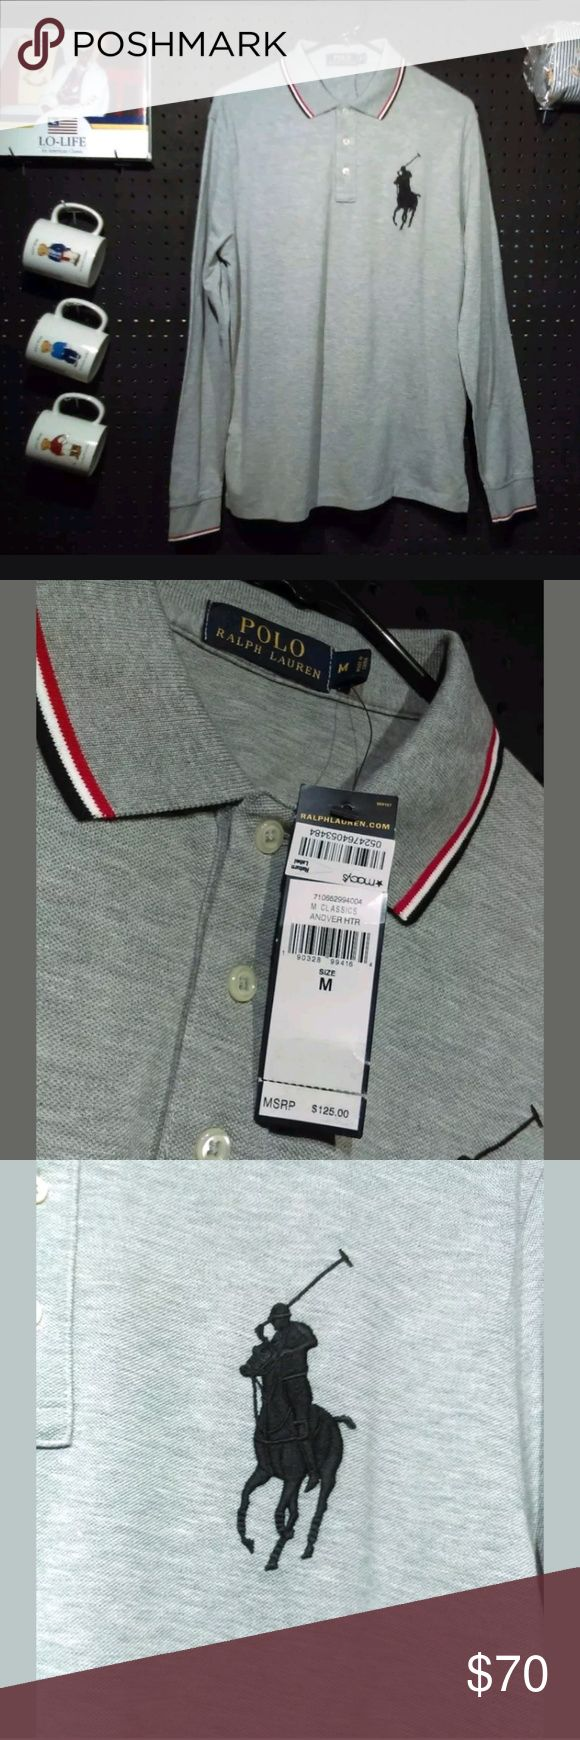 Mens M POLO RALPH LAUREN LONG SLEEVE OLMYPIC Brand new with collar and long sleeve polo by  ralph lauren grey shirt with Olympic colors on color and sleeve. Black poney detail on right. Original price 125 Mens Medium MACHINE WASHABLE 100 PERCENT cotton Polo by Ralph Lauren Shirts Polos